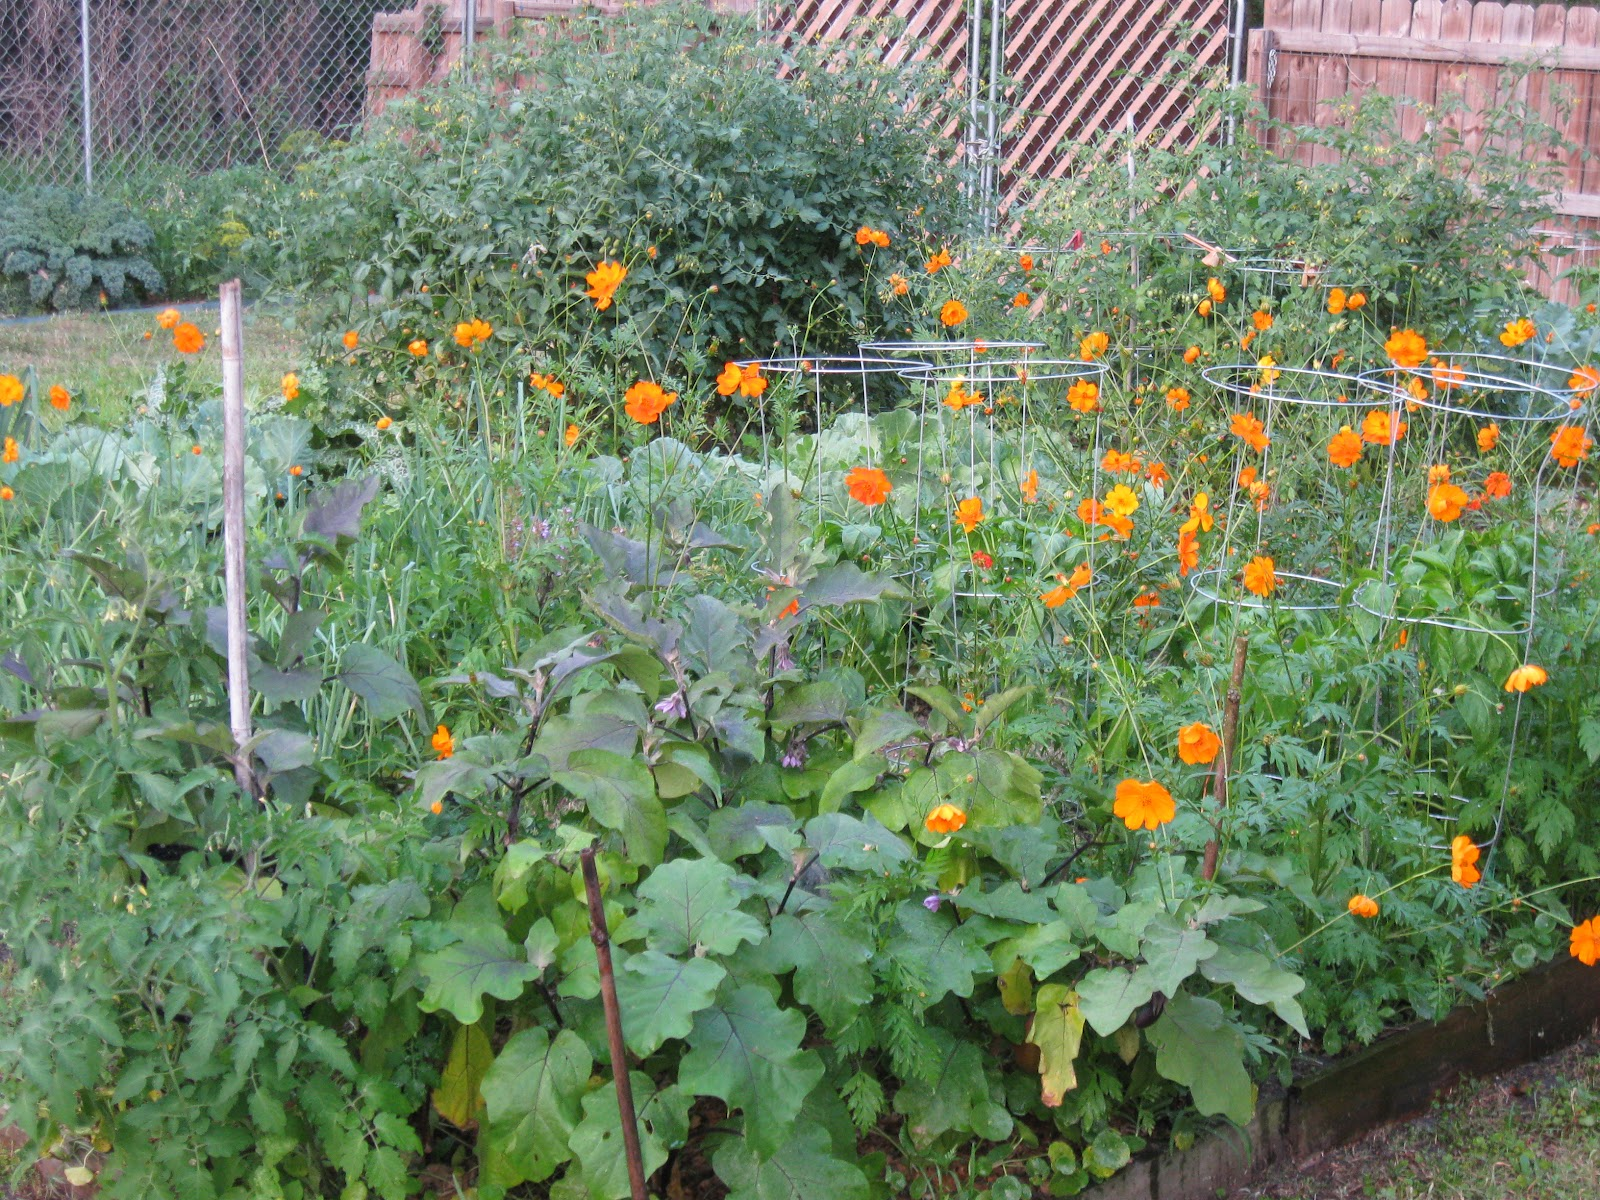 Growing food in florida what can we plant in april in florida - Vegetable garden what to plant in april ...